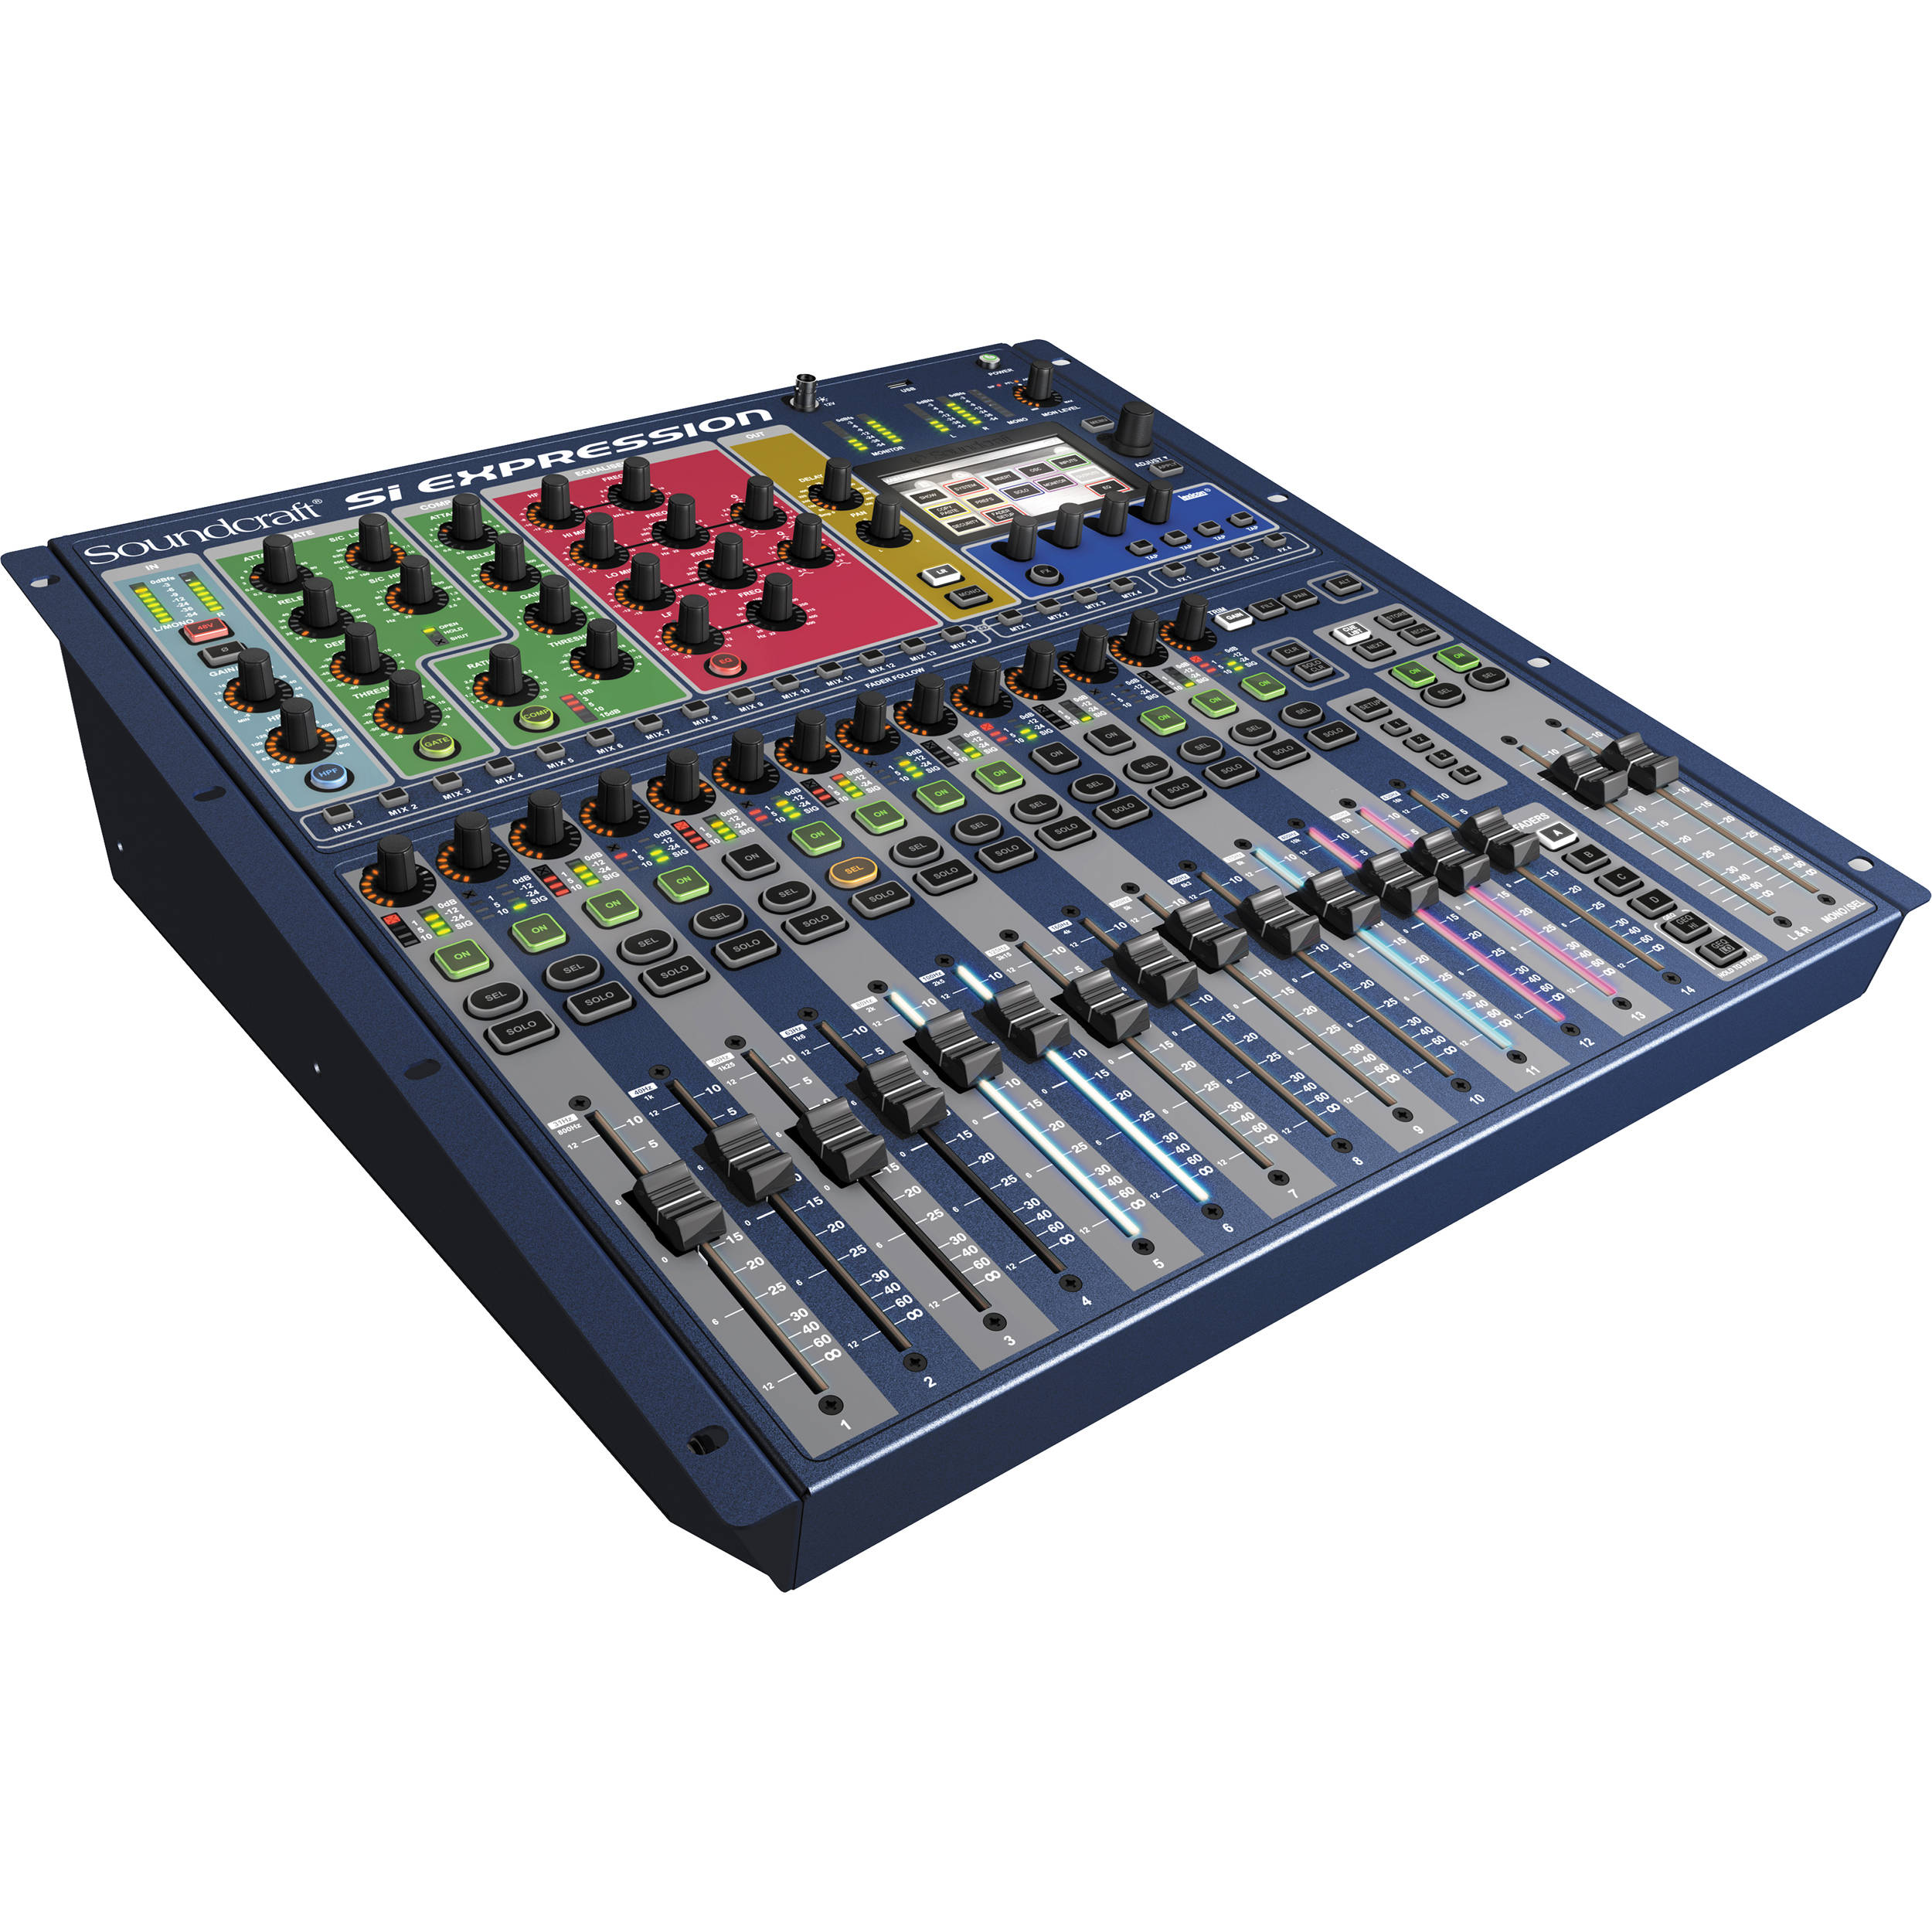 soundcraft si expression 1 digital mixer 5035677 b h photo video. Black Bedroom Furniture Sets. Home Design Ideas